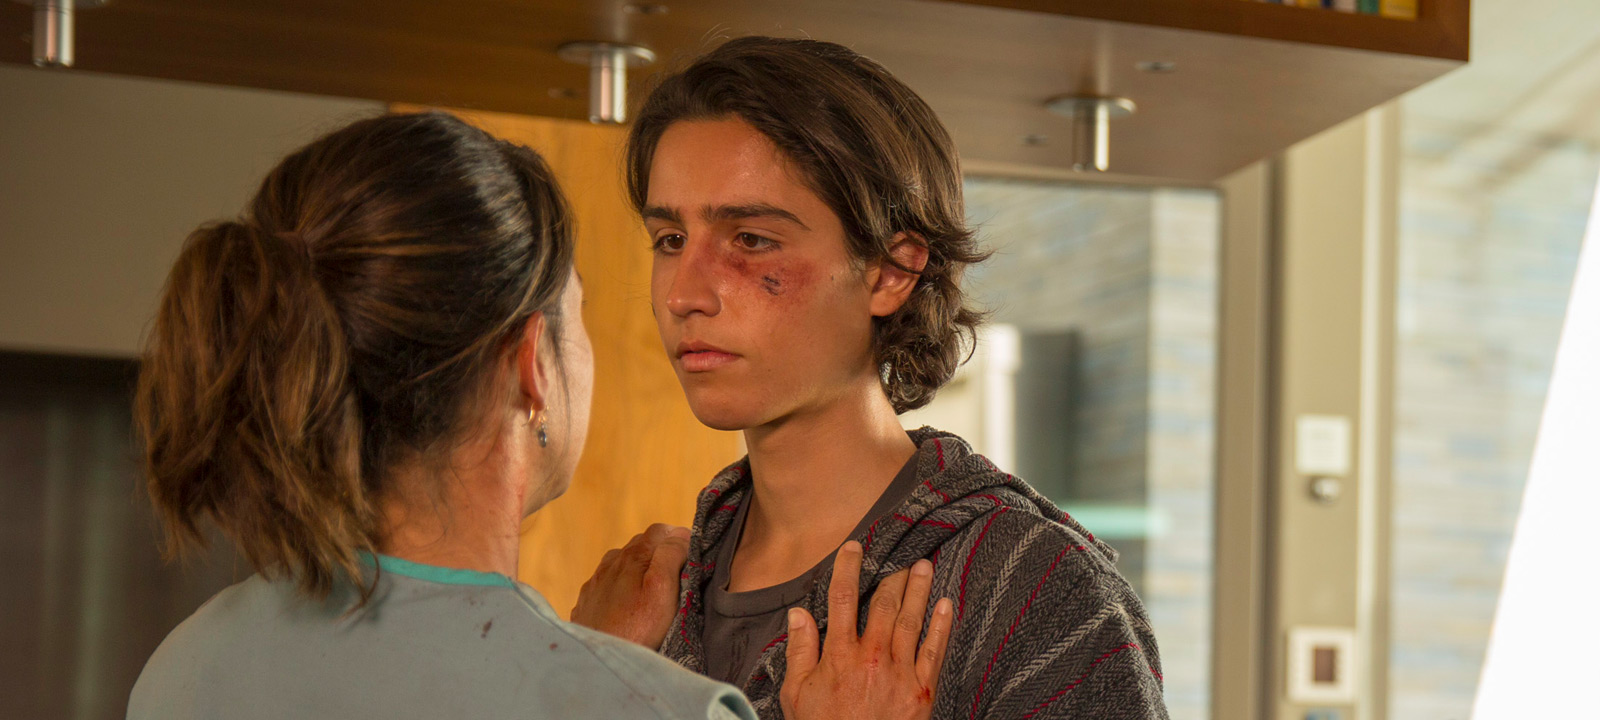 fear-the-walking-dead-episode-106-chris-henrie-interview-800×600